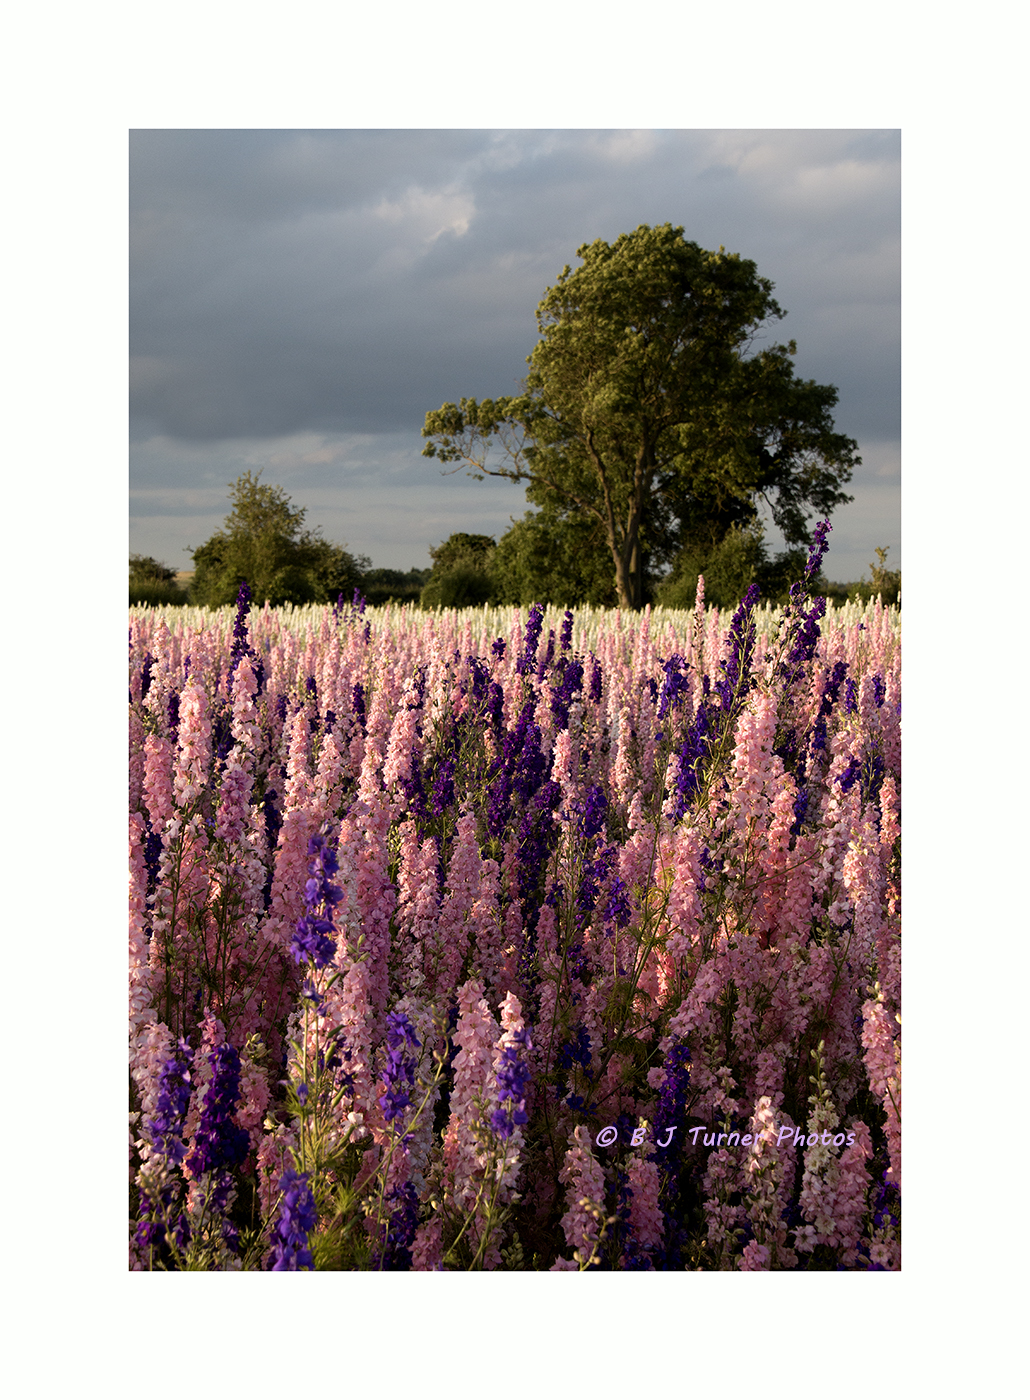 Delphinium field with tree and border copyright_MG_2836.jpg